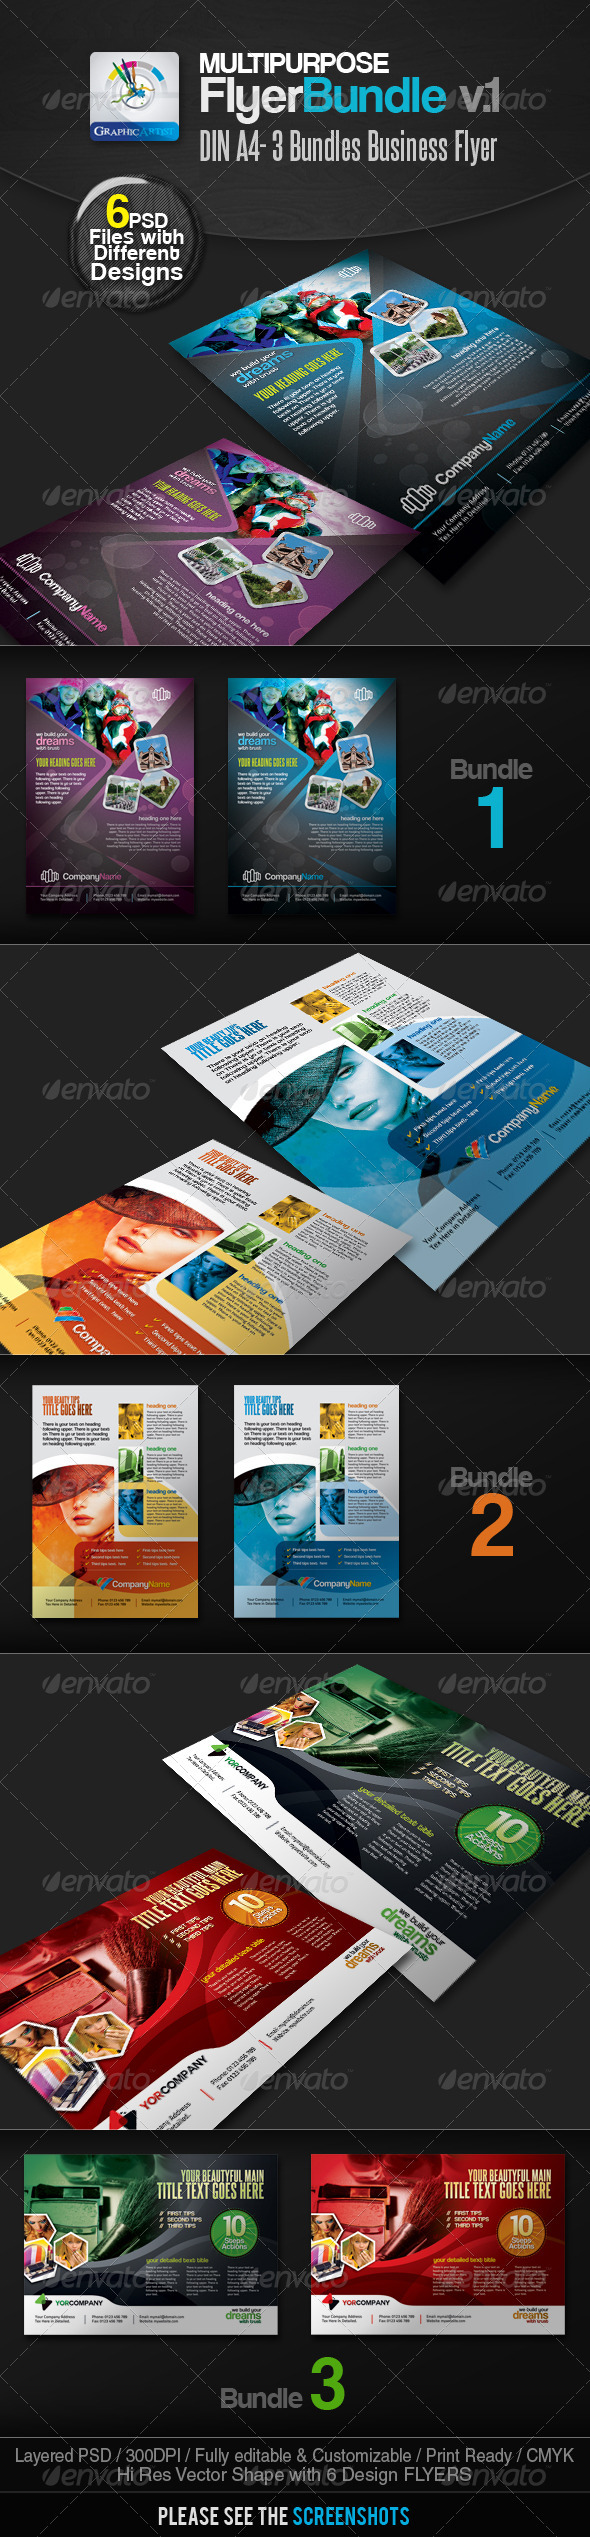 Multipurpose Business Flyer Pack v.1 - Corporate Flyers